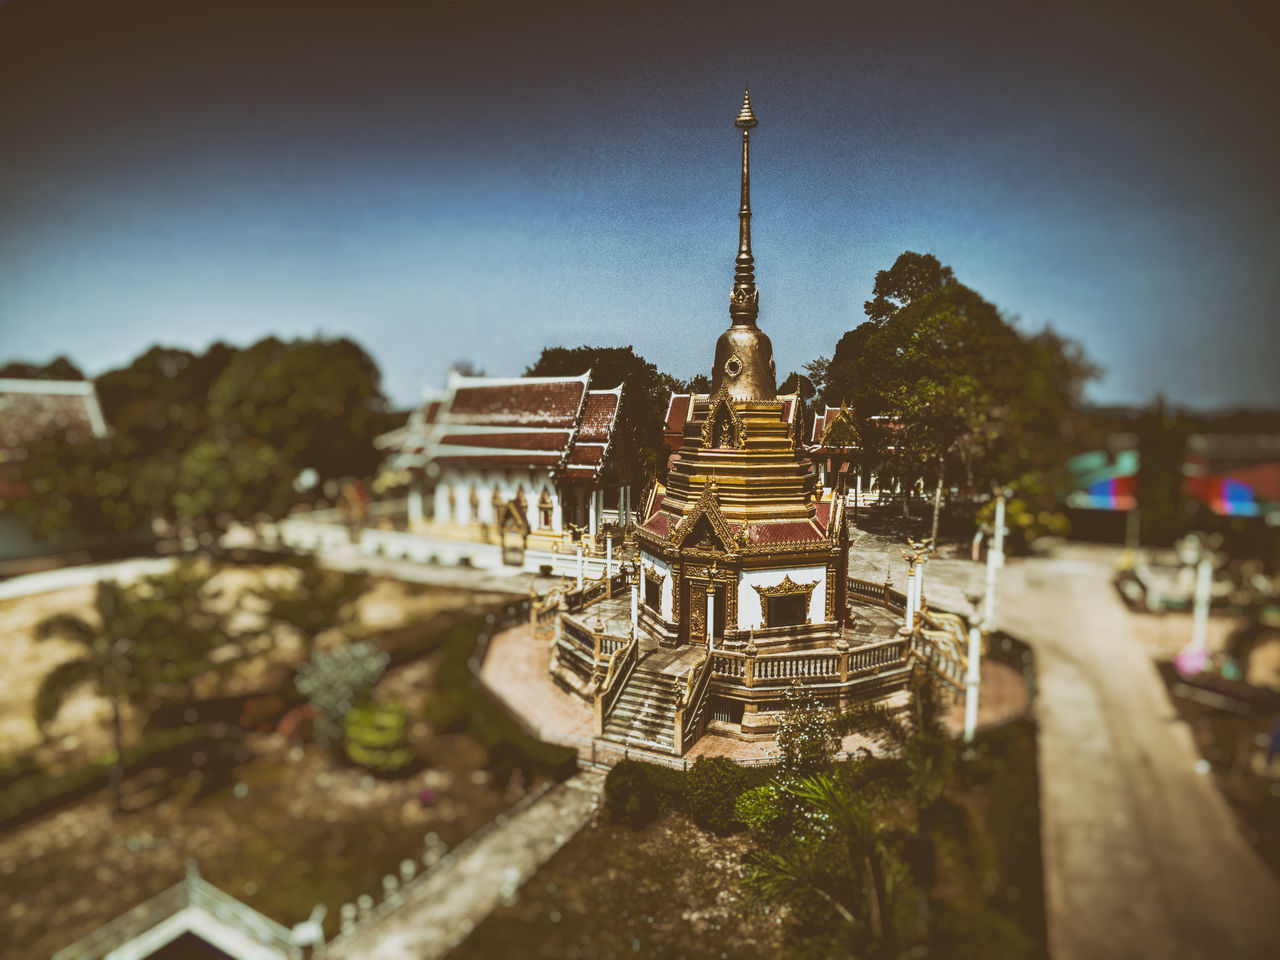 Drone view of a temple in Rayong Thailand Travel Sky Architecture Place Of Worship Religion Landscape Temple Temple Architecture Thailand Rayong Thailand Travel Destinations Tradition Tourism Visit Discovering Discover  Drone  View From Above Drone Photography Stupa Wat Chedi Golden Temple